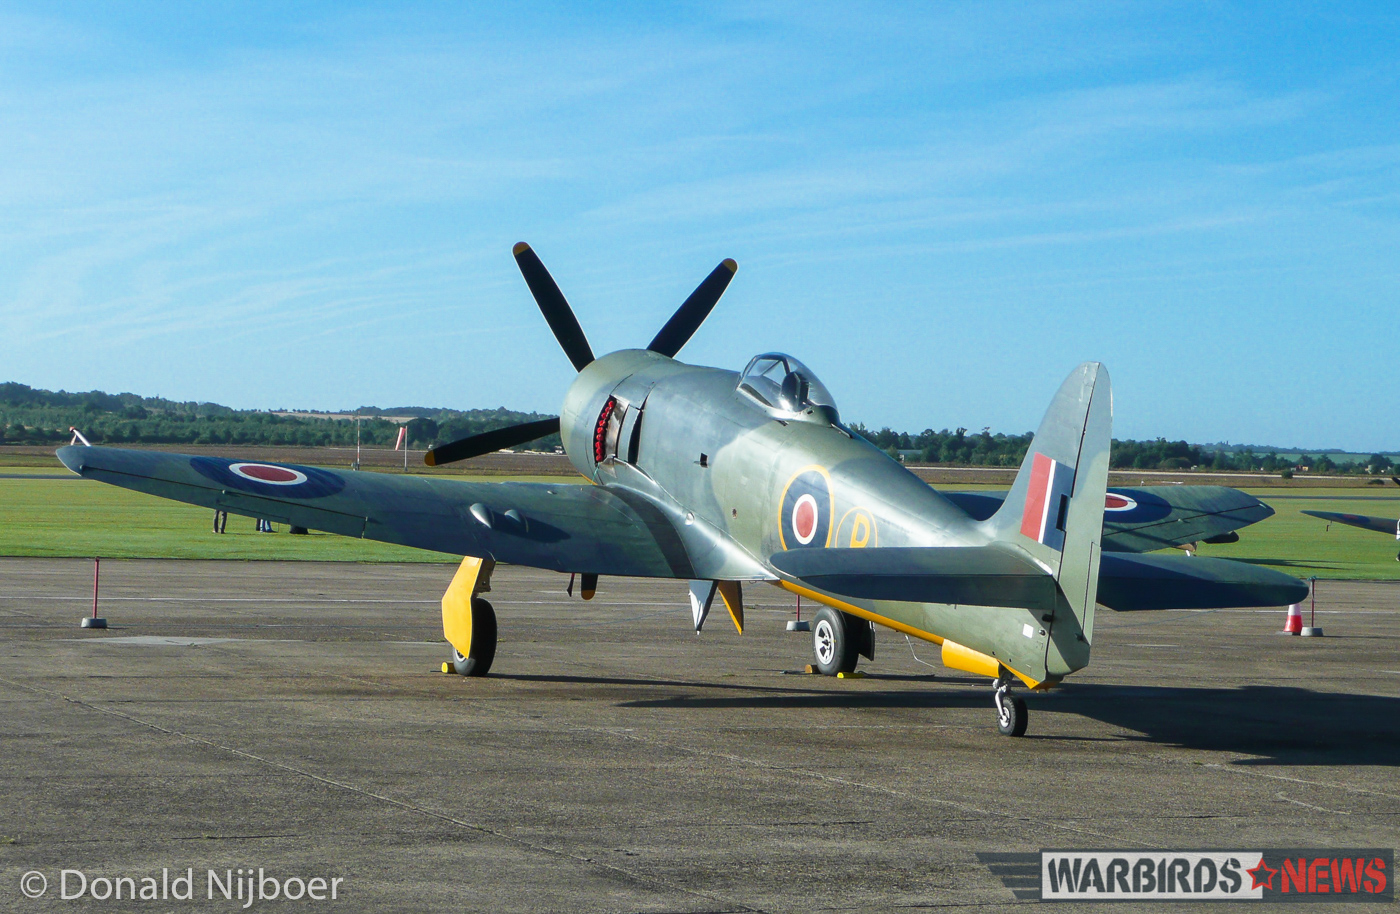 Air Leasing's beautiful Hawker Fury painted to represent the prototype Sea Fury of 1945. (photo by Donald Nijboer)